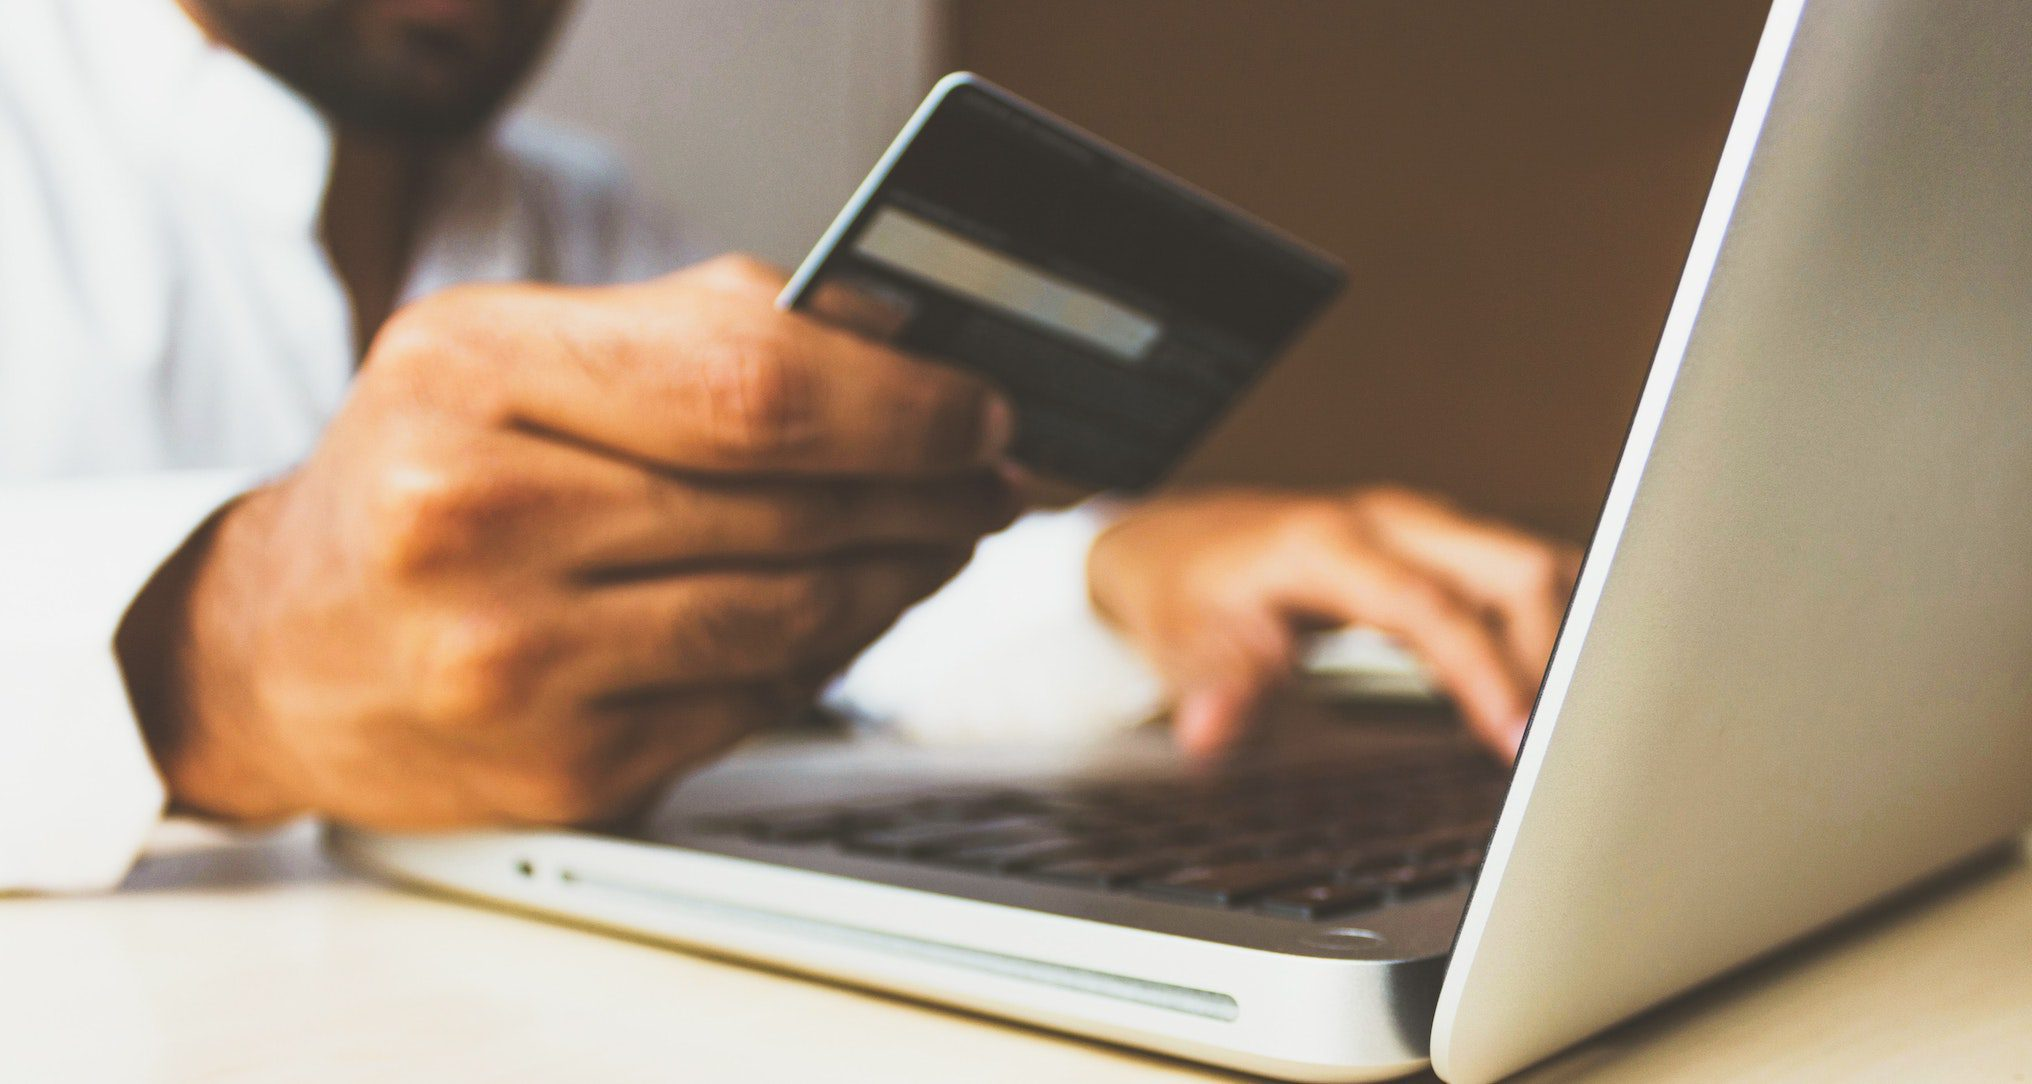 person typing on laptop and holding credit card